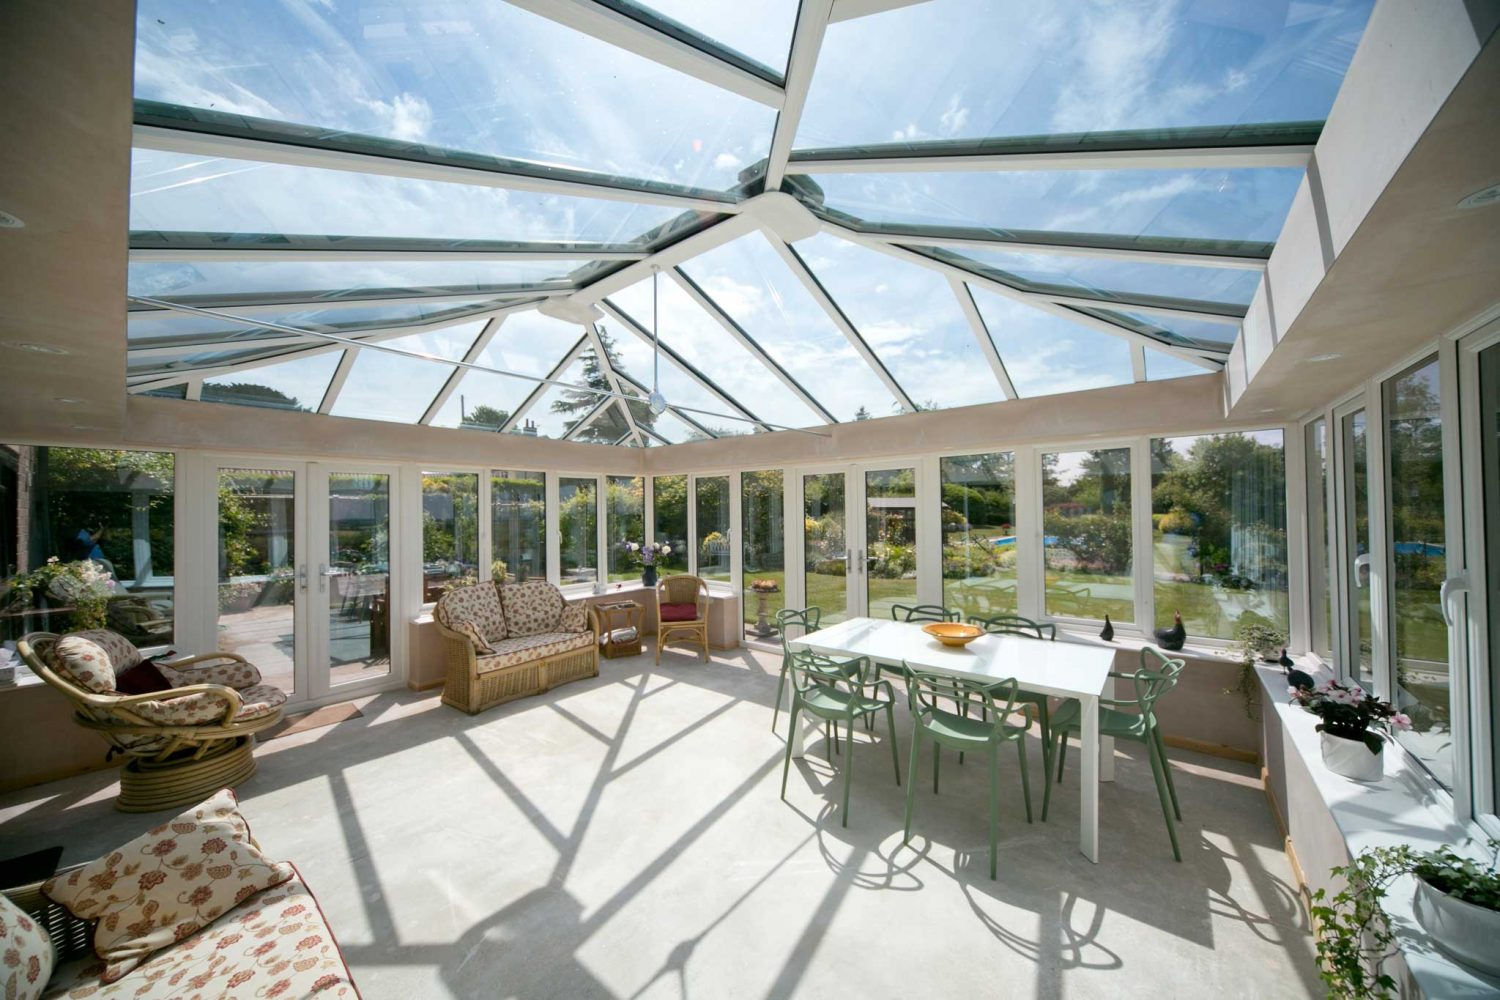 Conservatory Extension Groes-faen